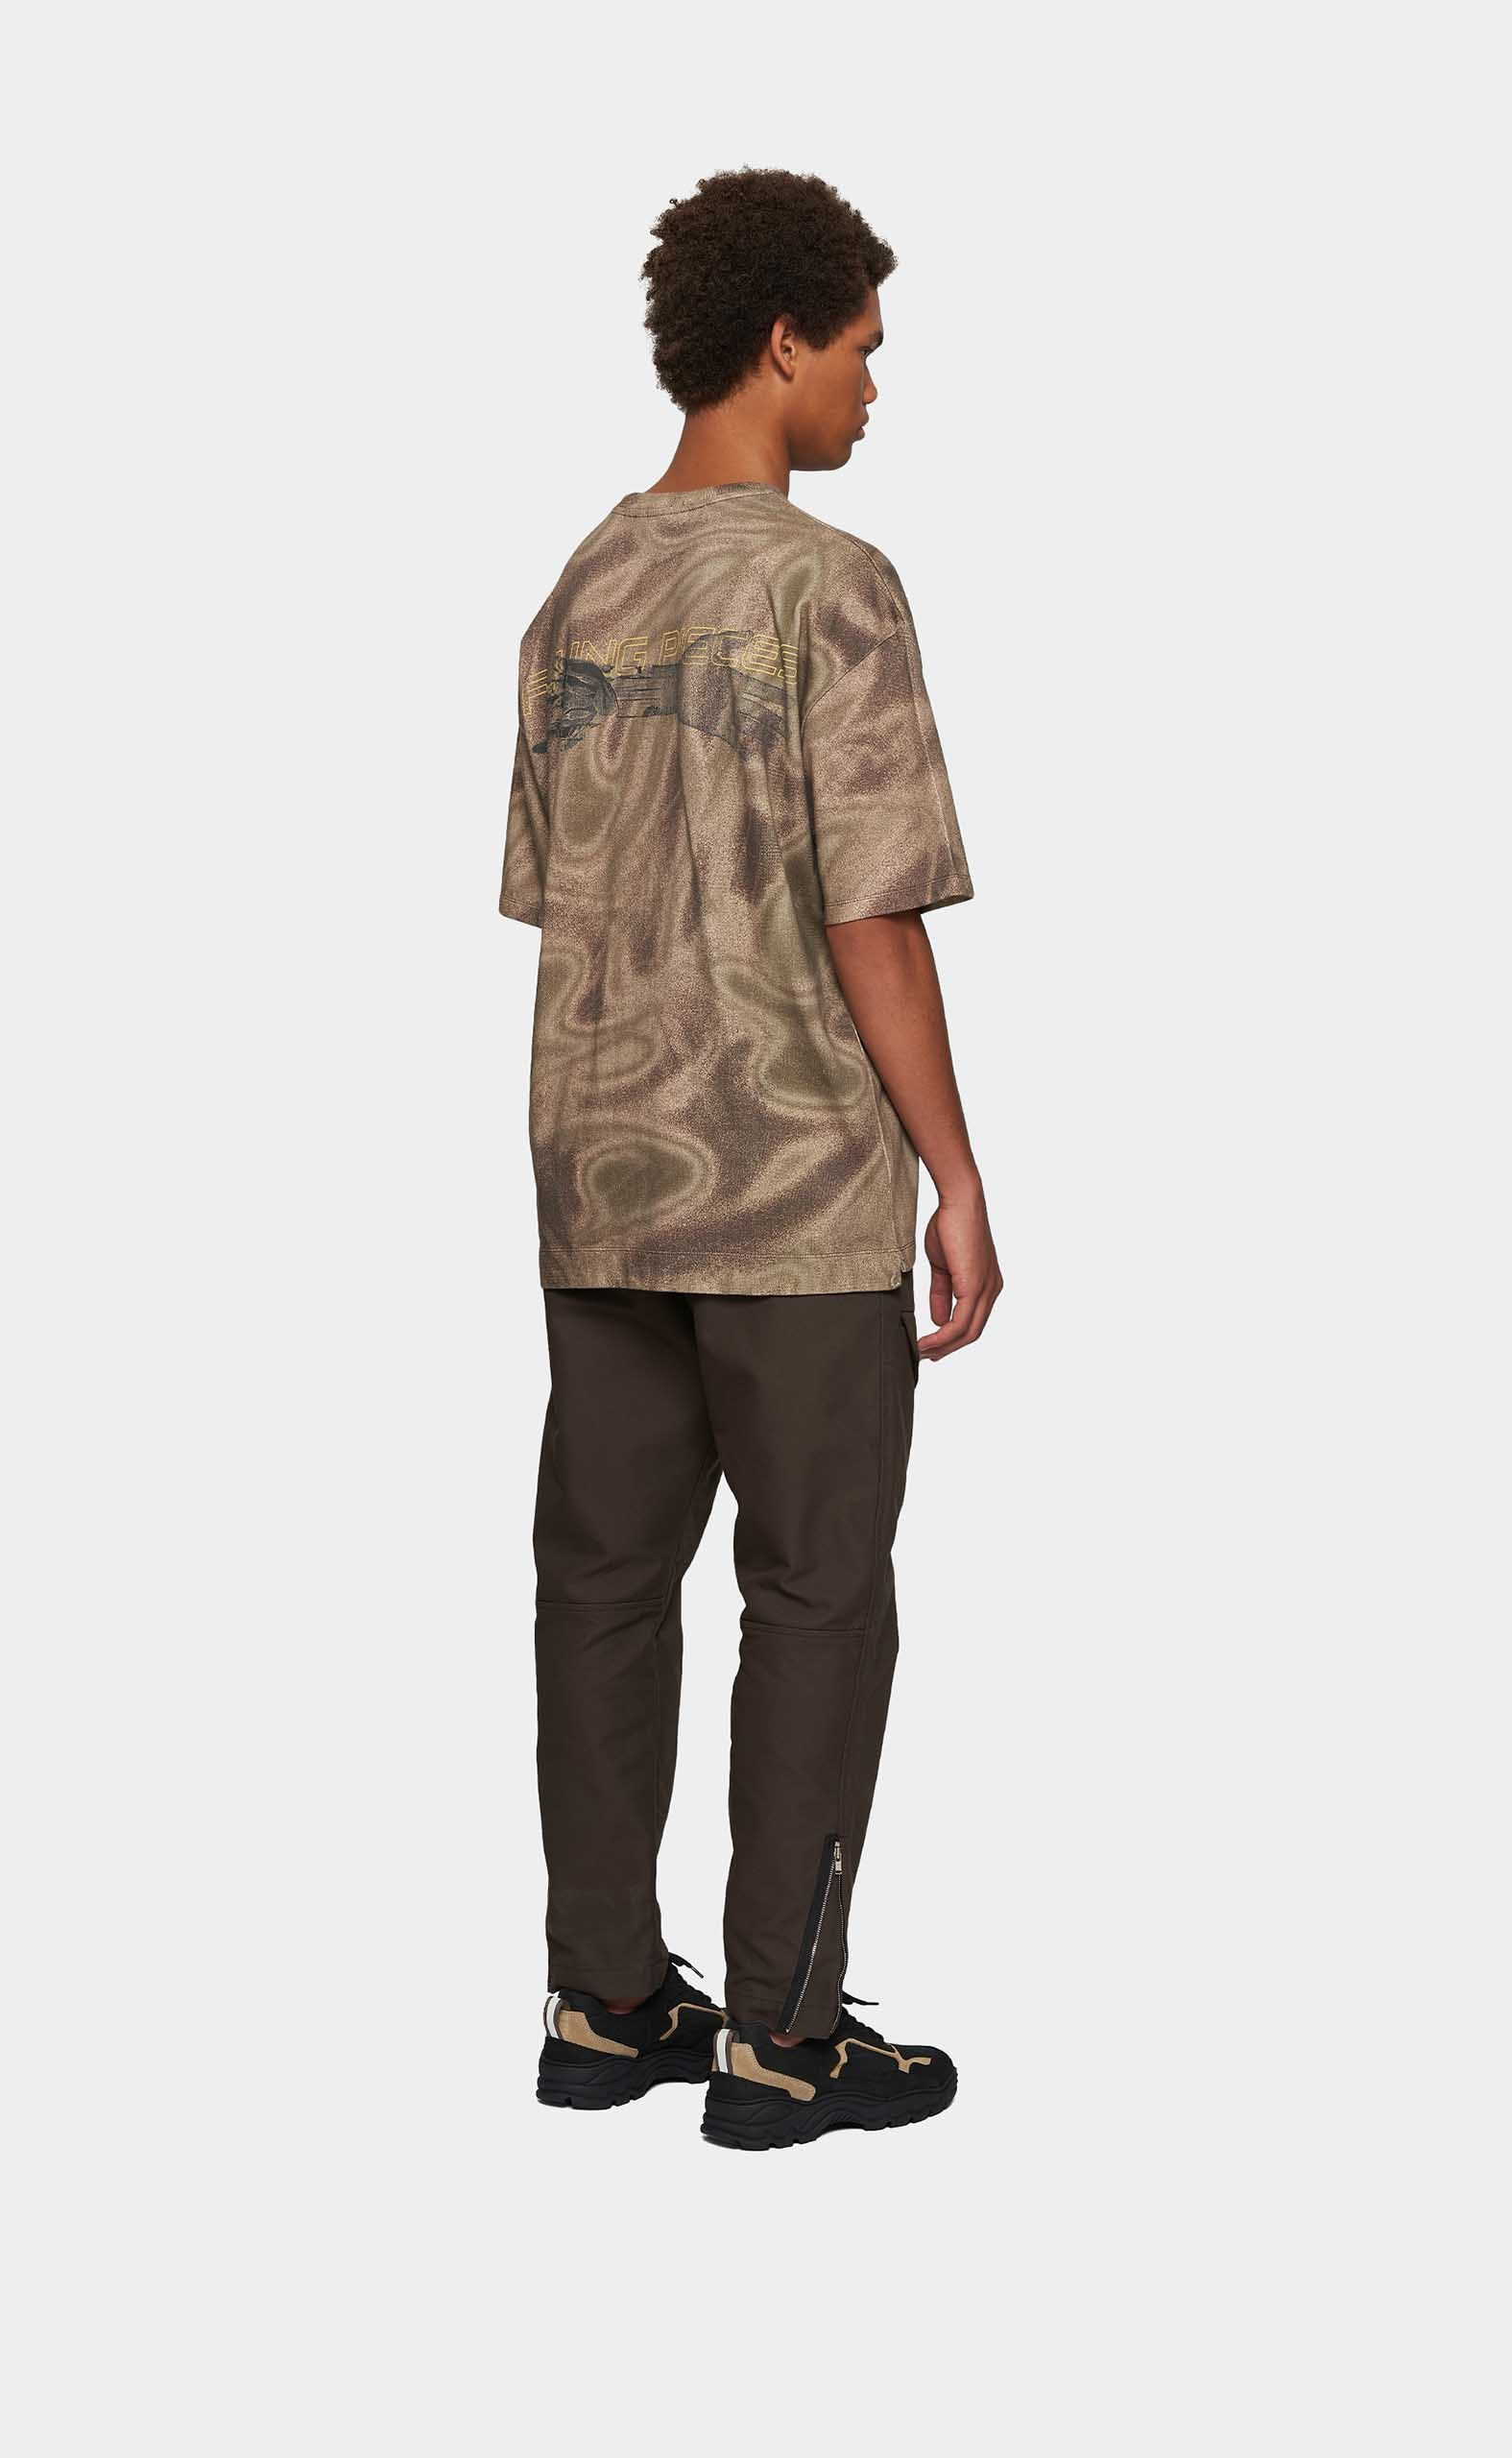 Graphic Tee Respect The Old Camo - men